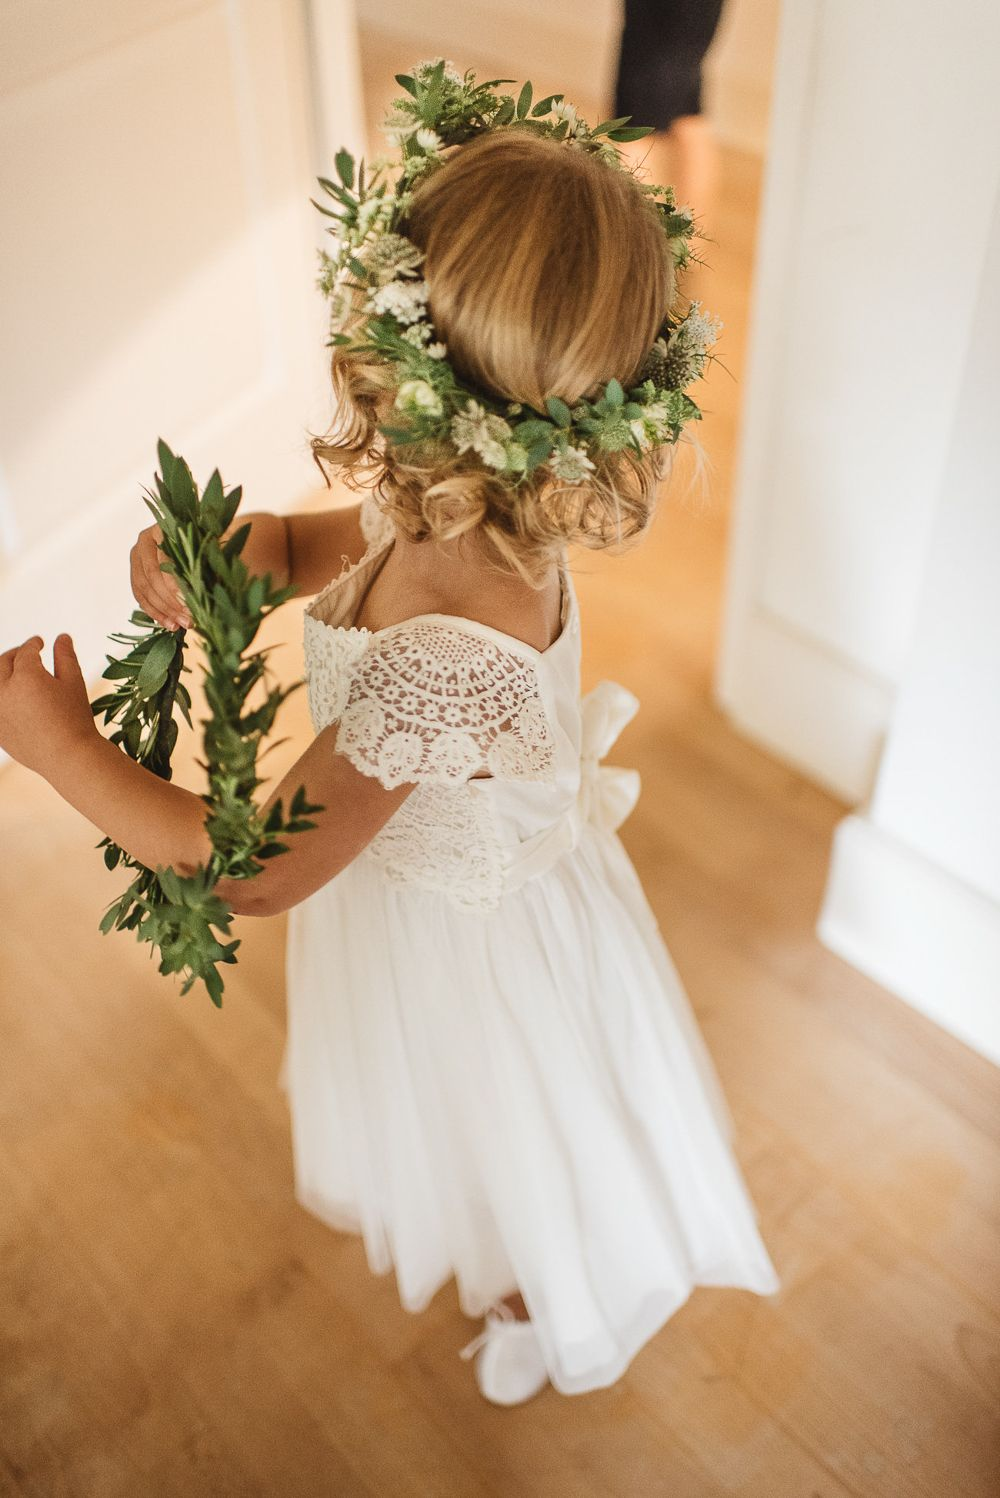 Rustic french wedding styling by another story studio flower girl la petite demoiselle dhonneur portera une robe blanche flower headband wedding flowergirl izmirmasajfo